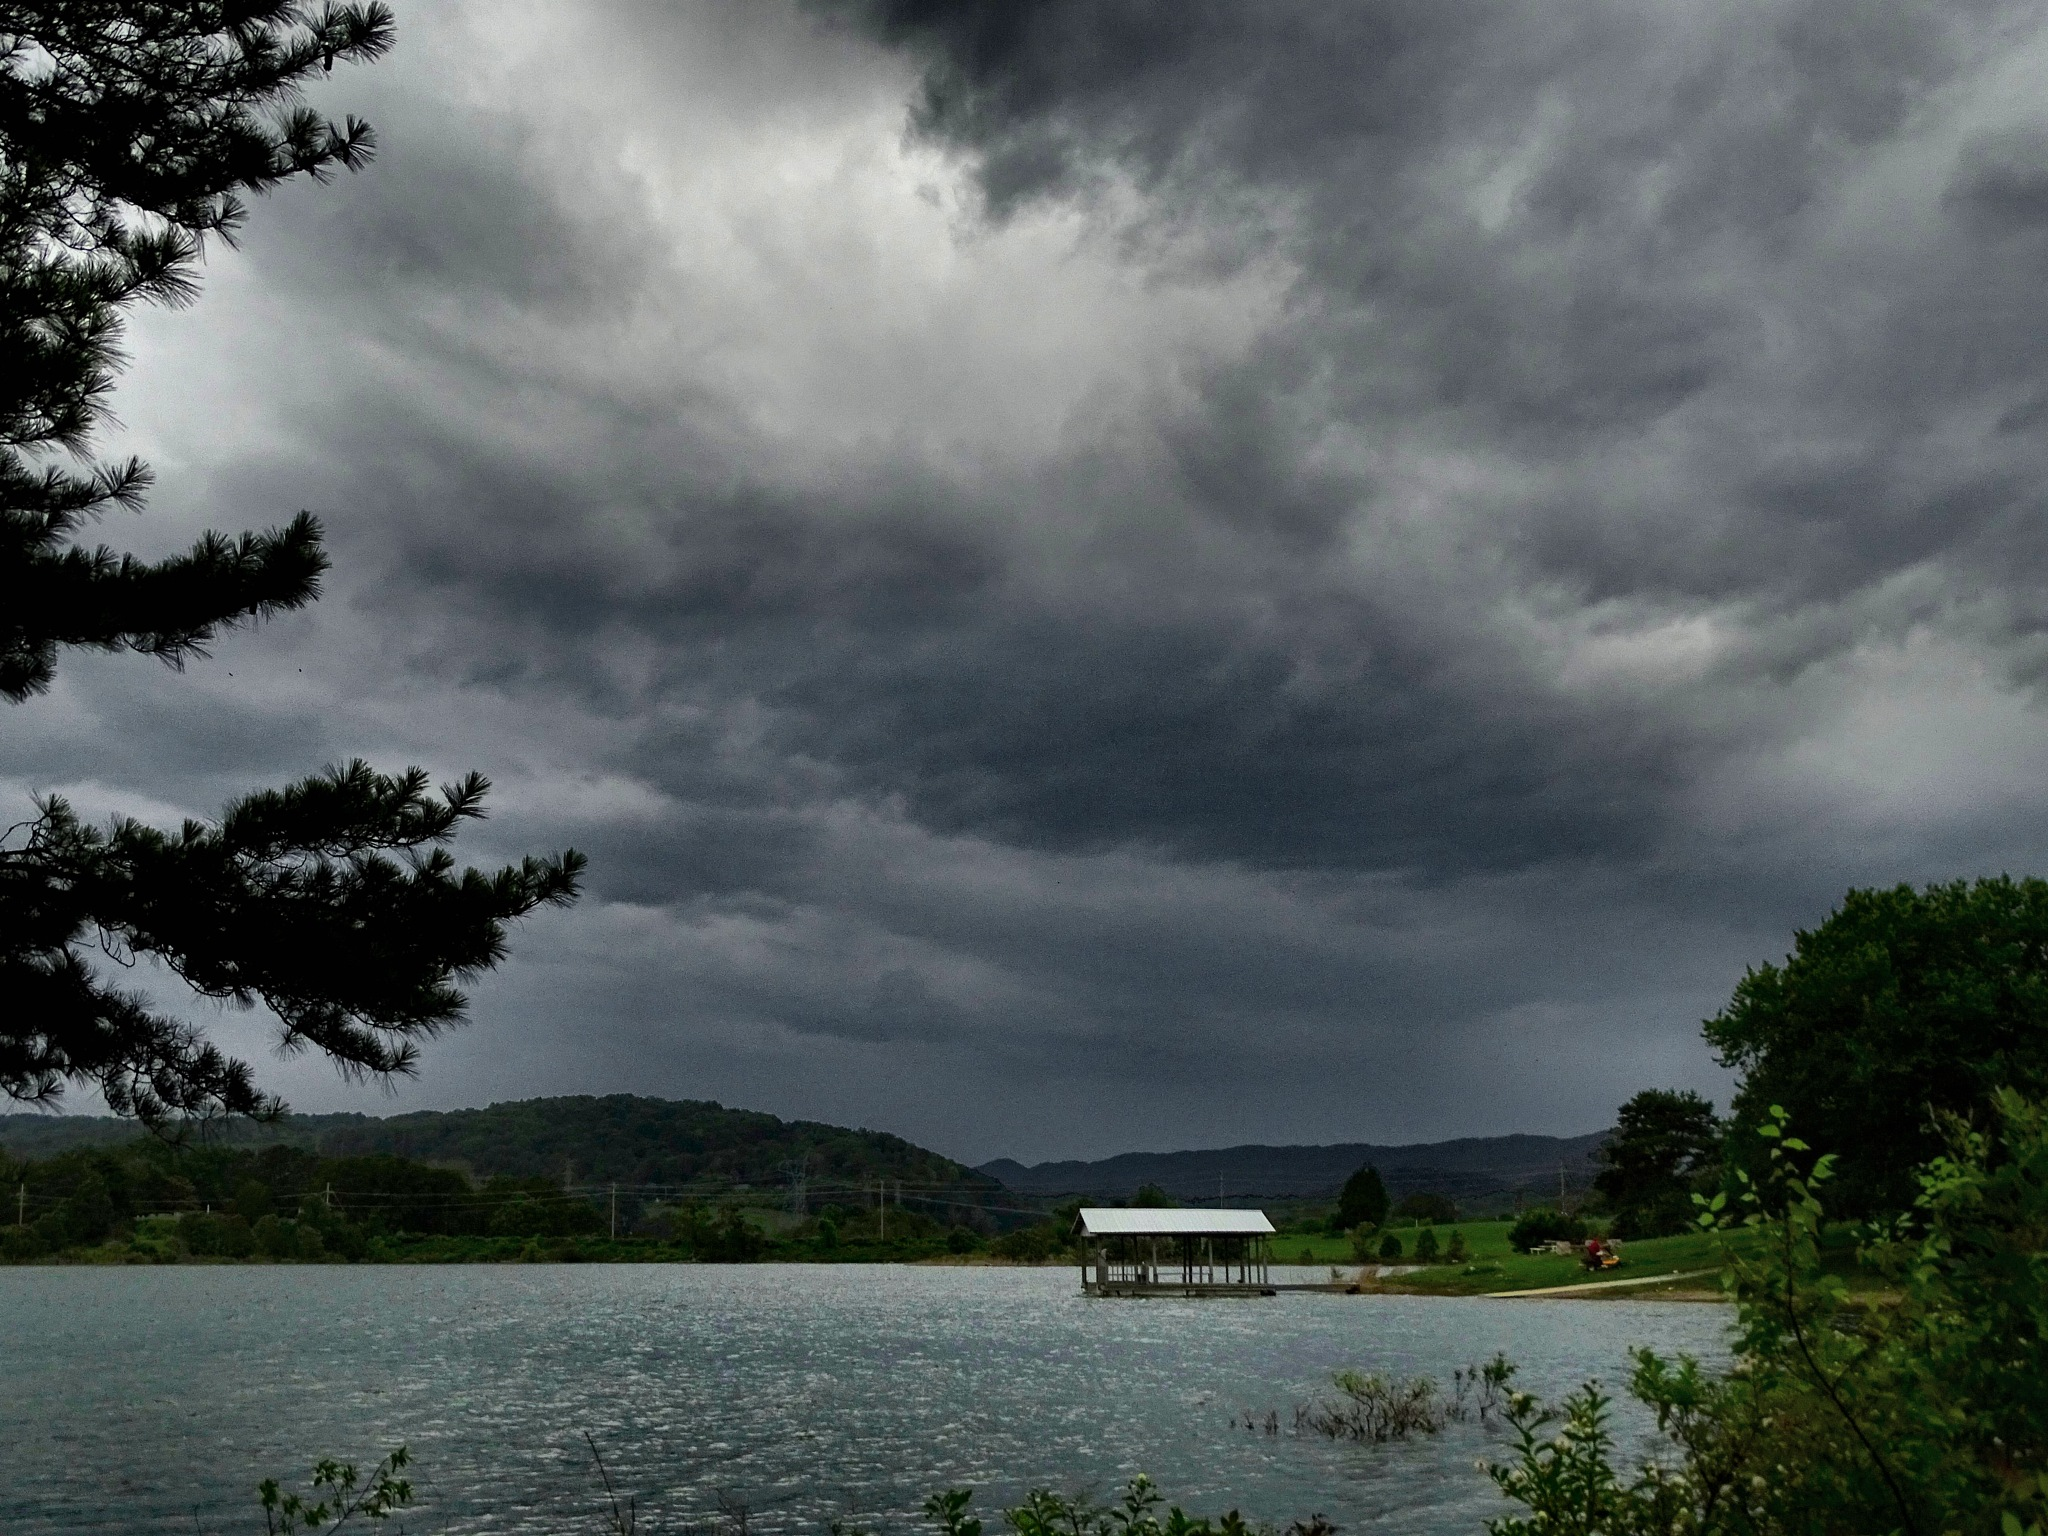 Clouds and Storms Move In by Patty Stockton